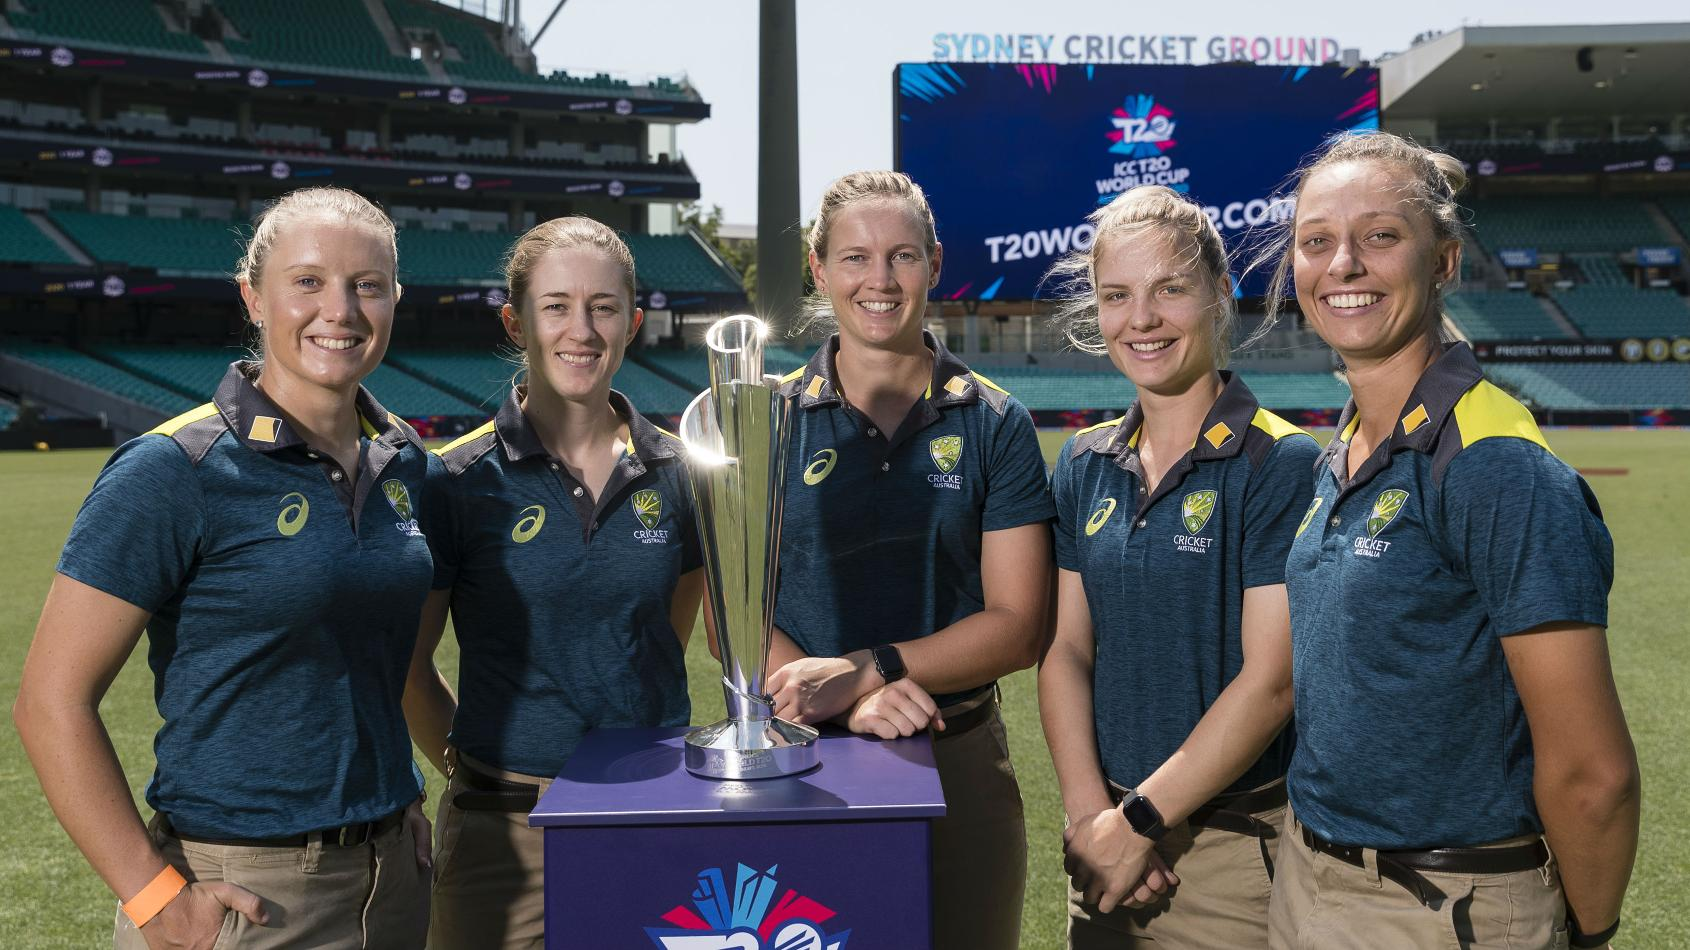 Women's T20 World Cup 2020 live stream: how to watch online from anywhere